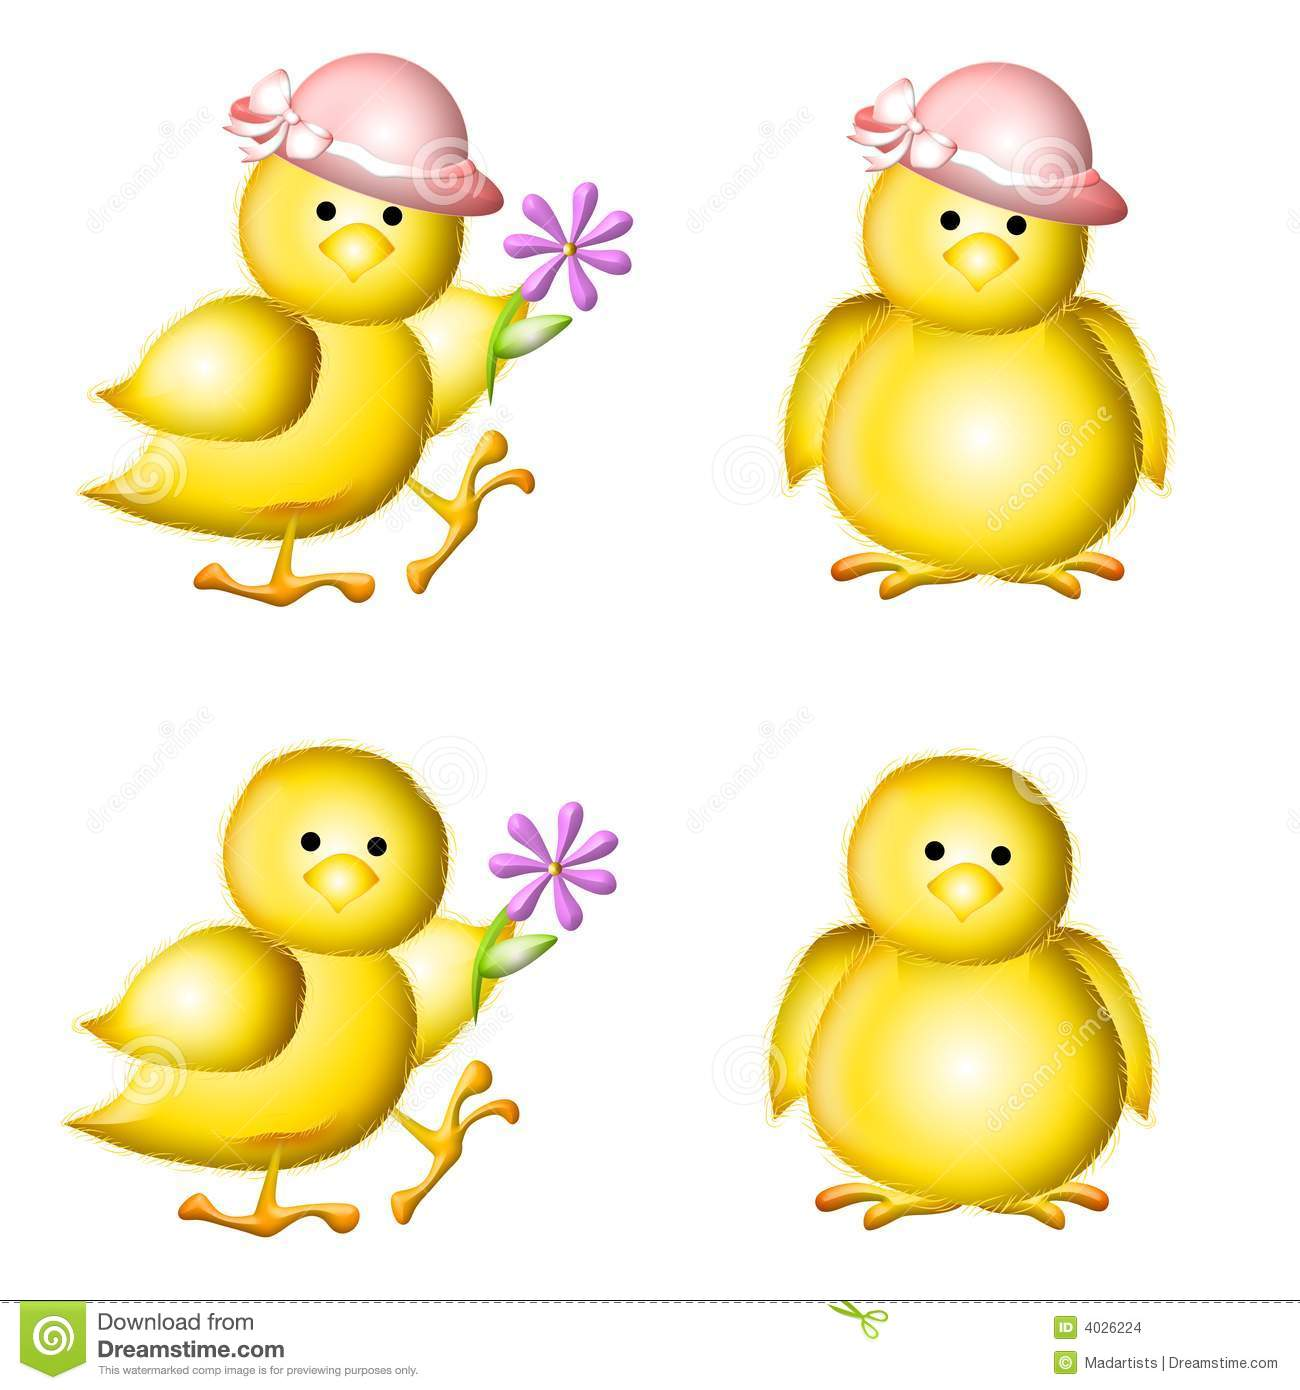 Chicks Wearing Hats And Holding Flowers Isolated For Easy Placement